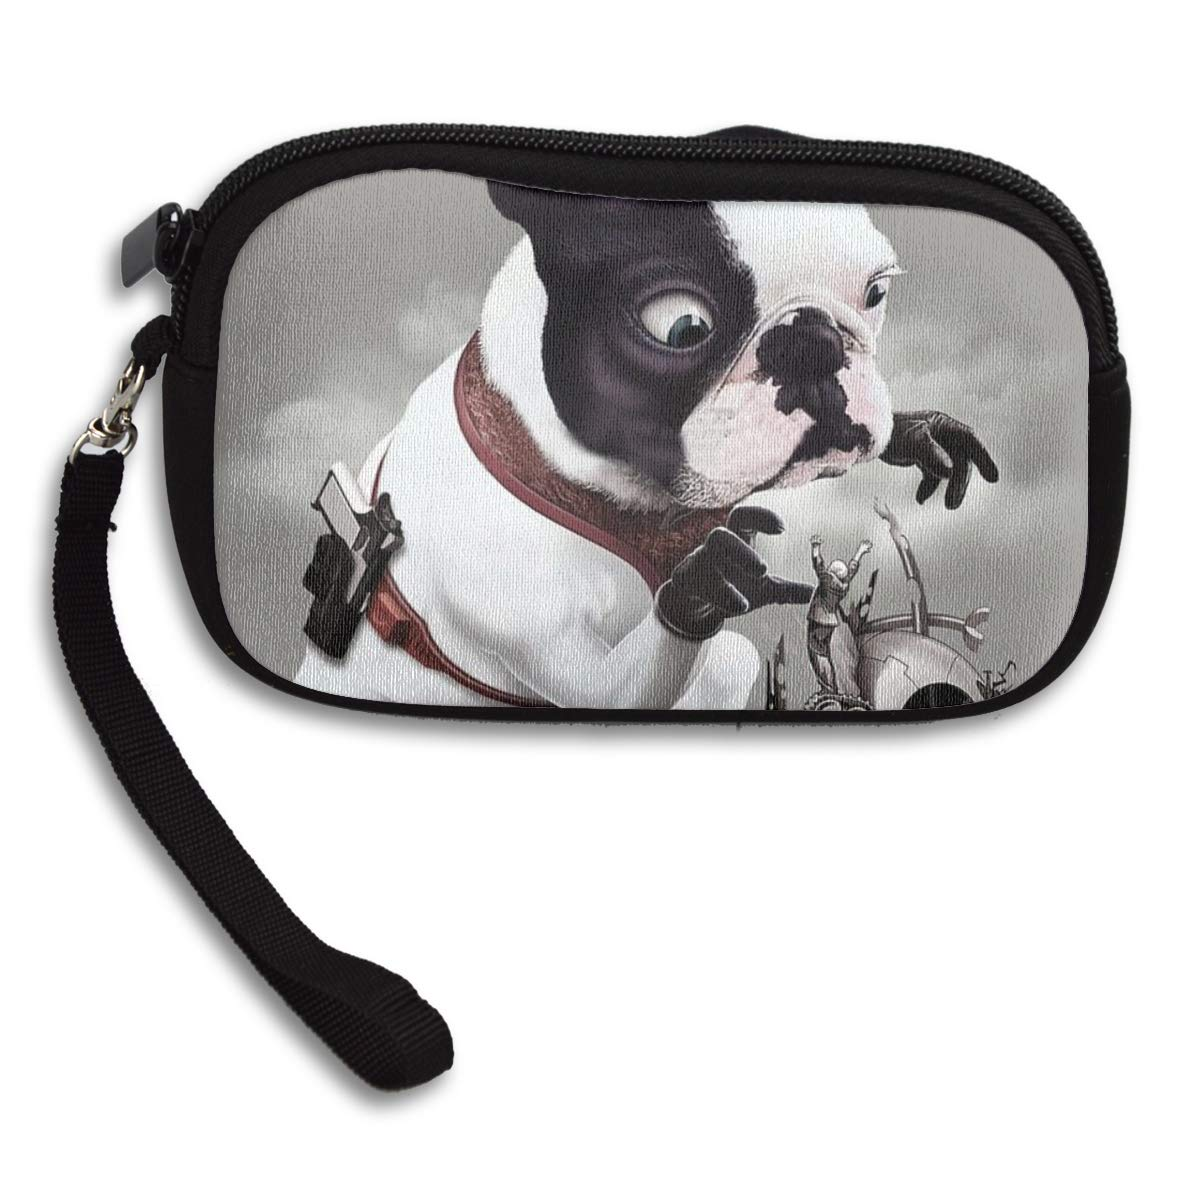 French Bulldog Mission Went Wrong Funny Coin Pouch Clutch Purse Wristlet Wallet Phone Card Holder Handbag